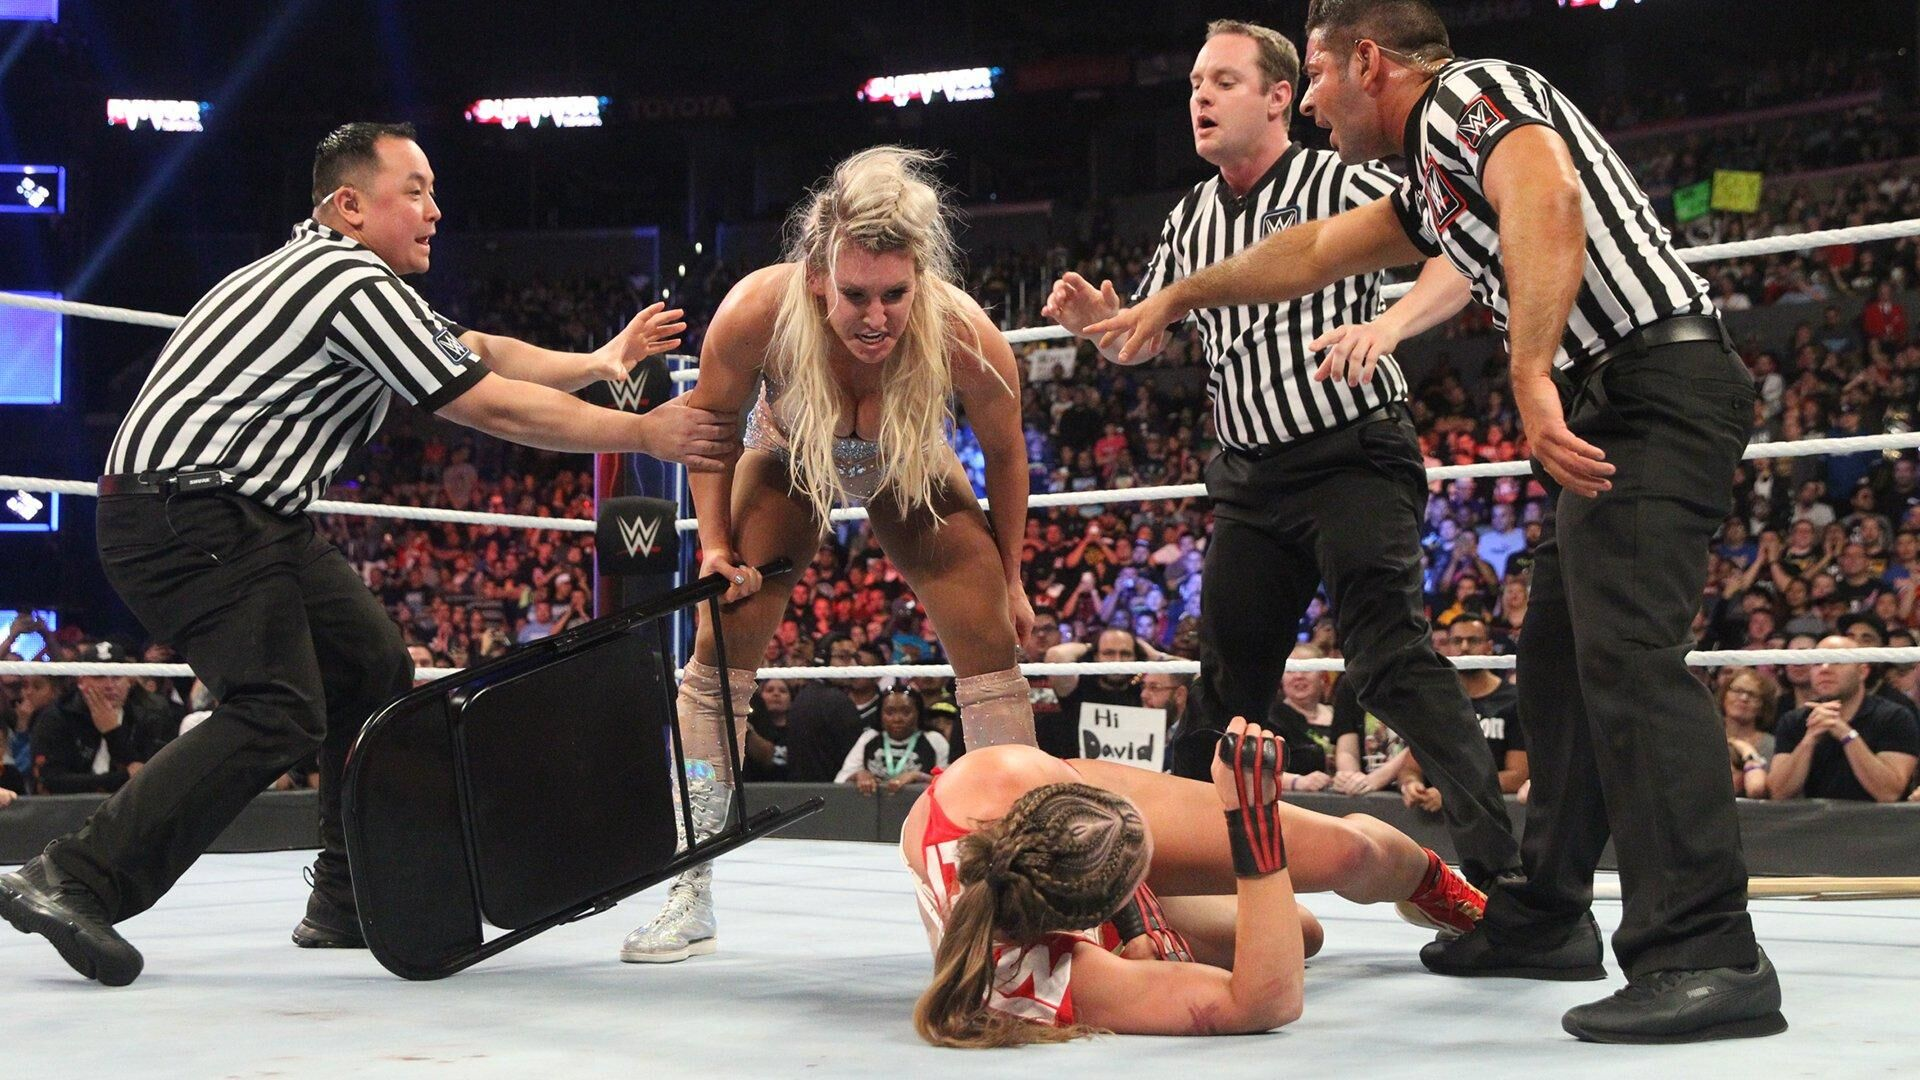 WWE SmackDown Live Predictions: SmackDown Gets The (Anti) Hero They Need